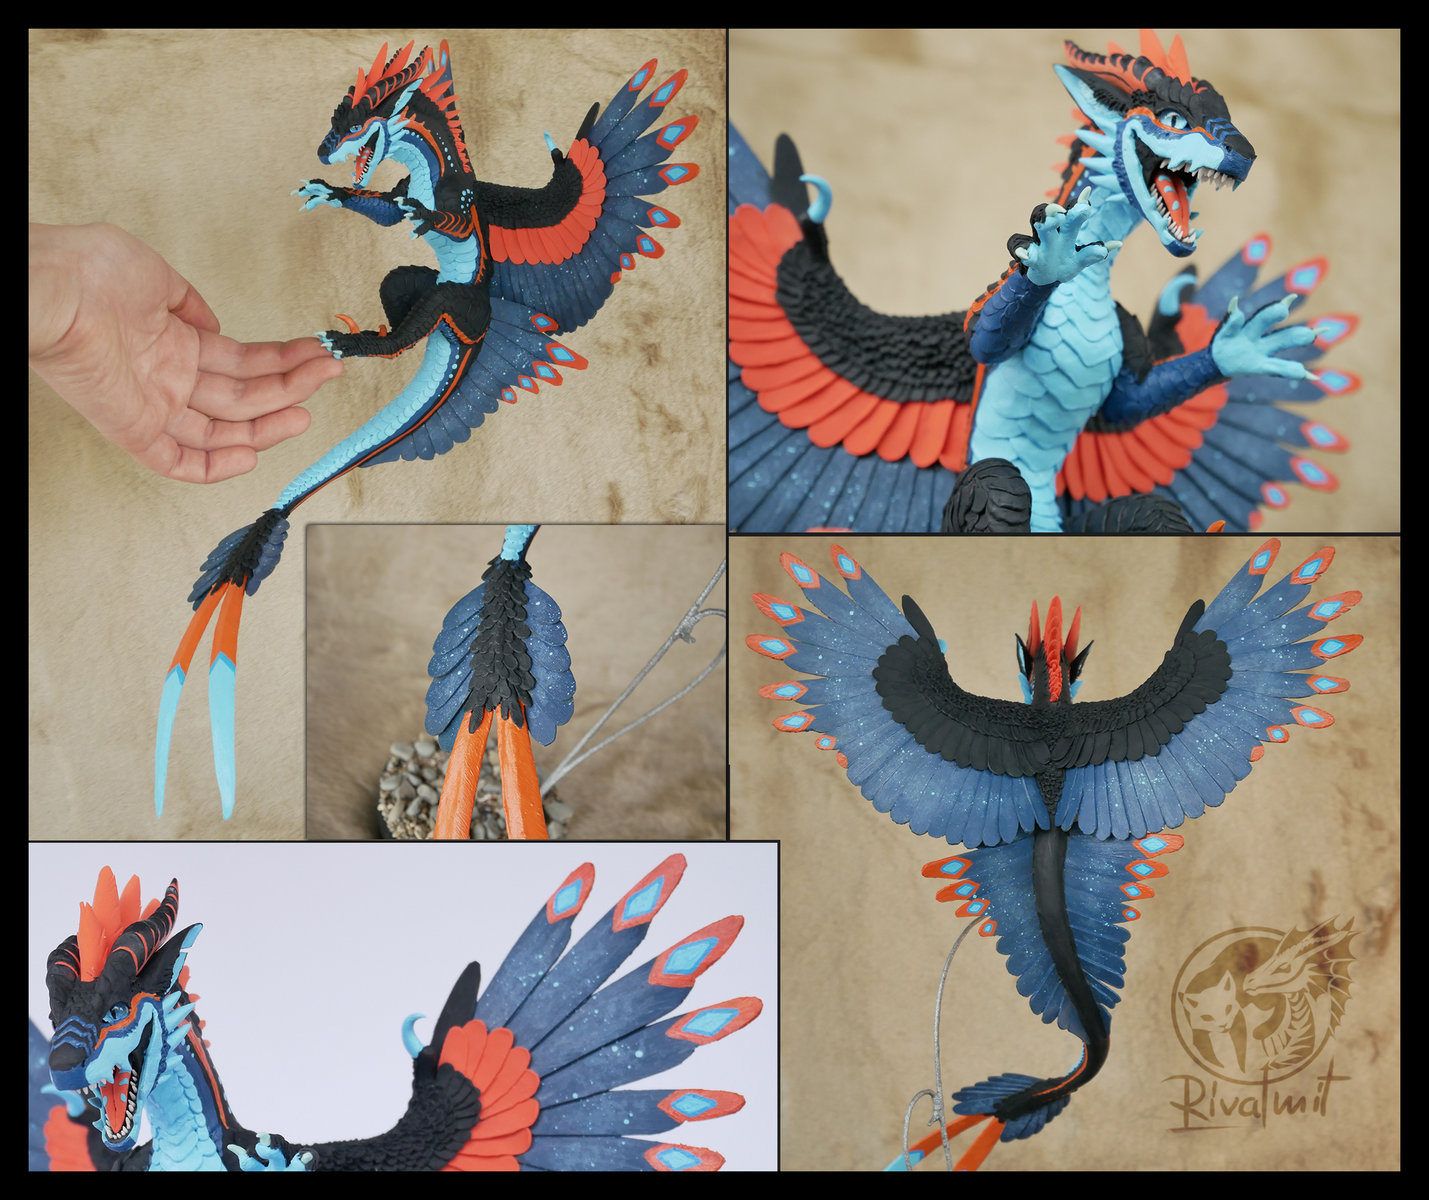 sculpture companion dragon feather balaning art traditional Sykress commissioned Companion